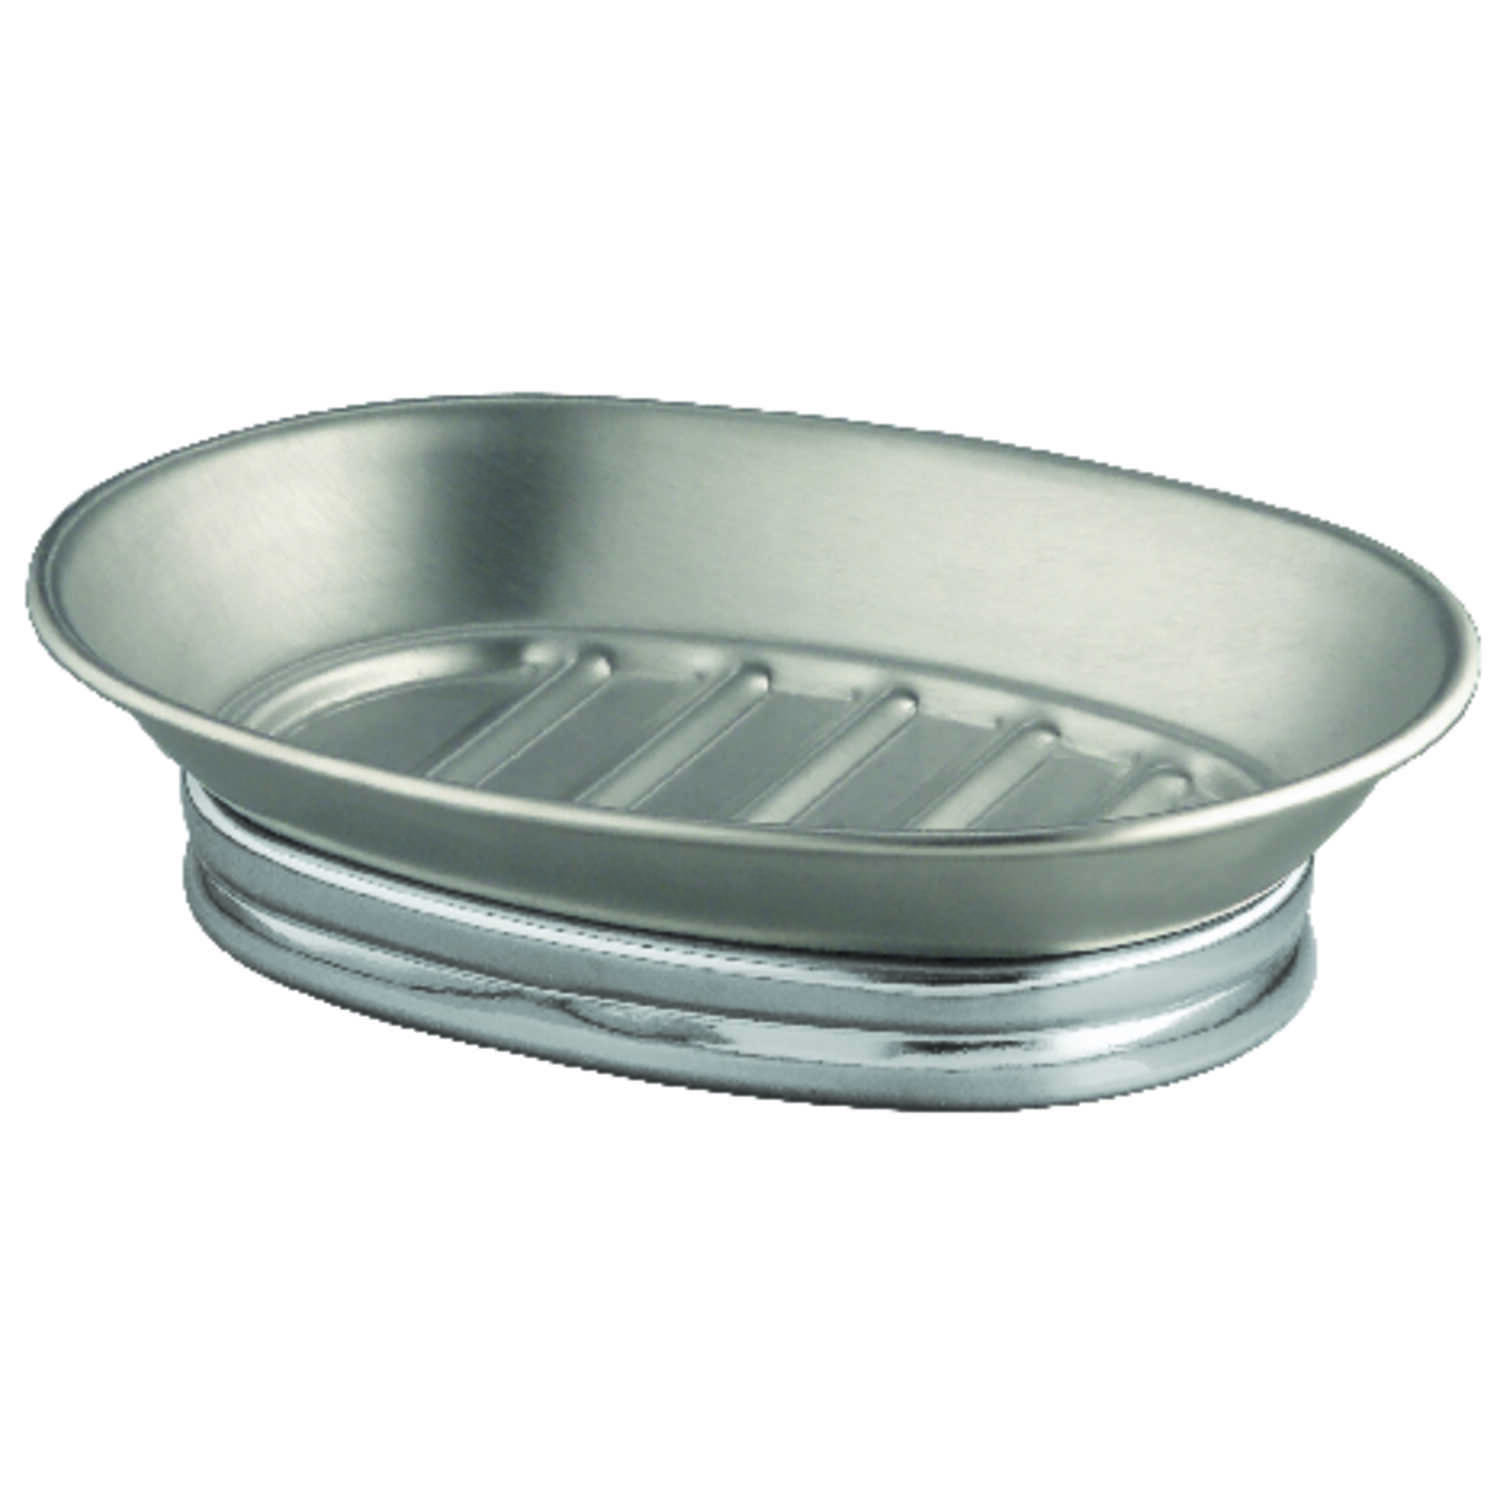 InterDesign  York  Soap Dish  1.5 in. W x 5.6 in. L x 3.8 in. H Chrome  Stainless steel  Silver